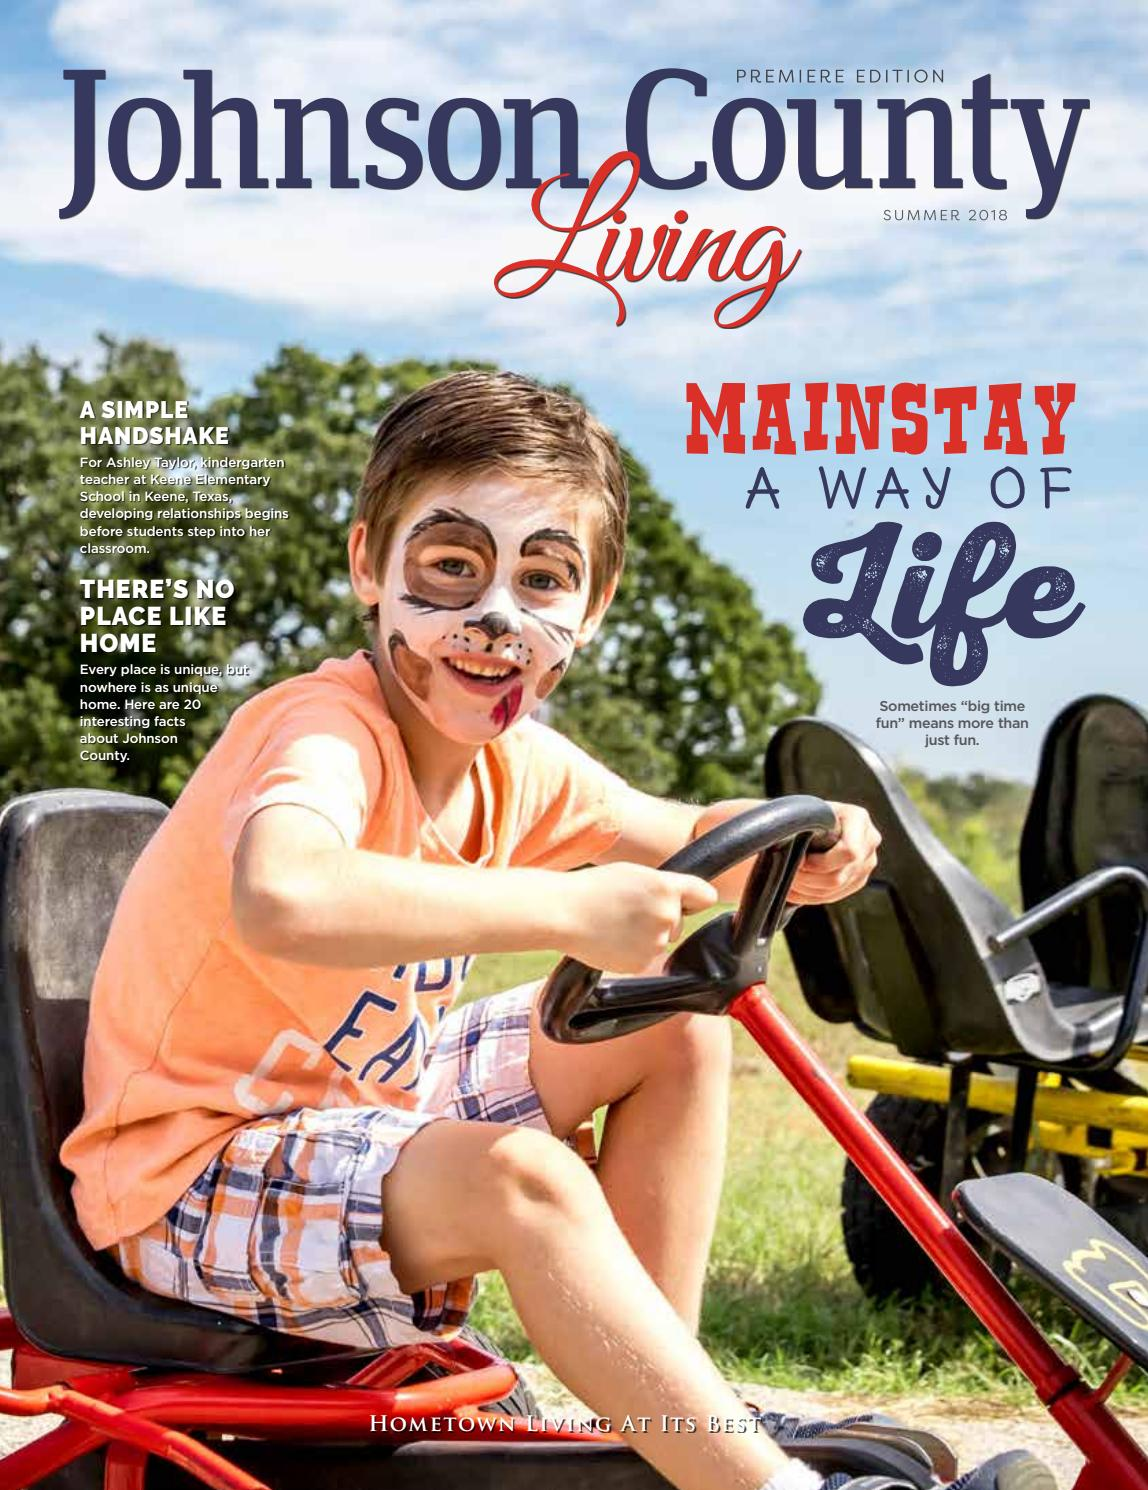 Johnson County Living - Summer 2018 by RedFin - issuu